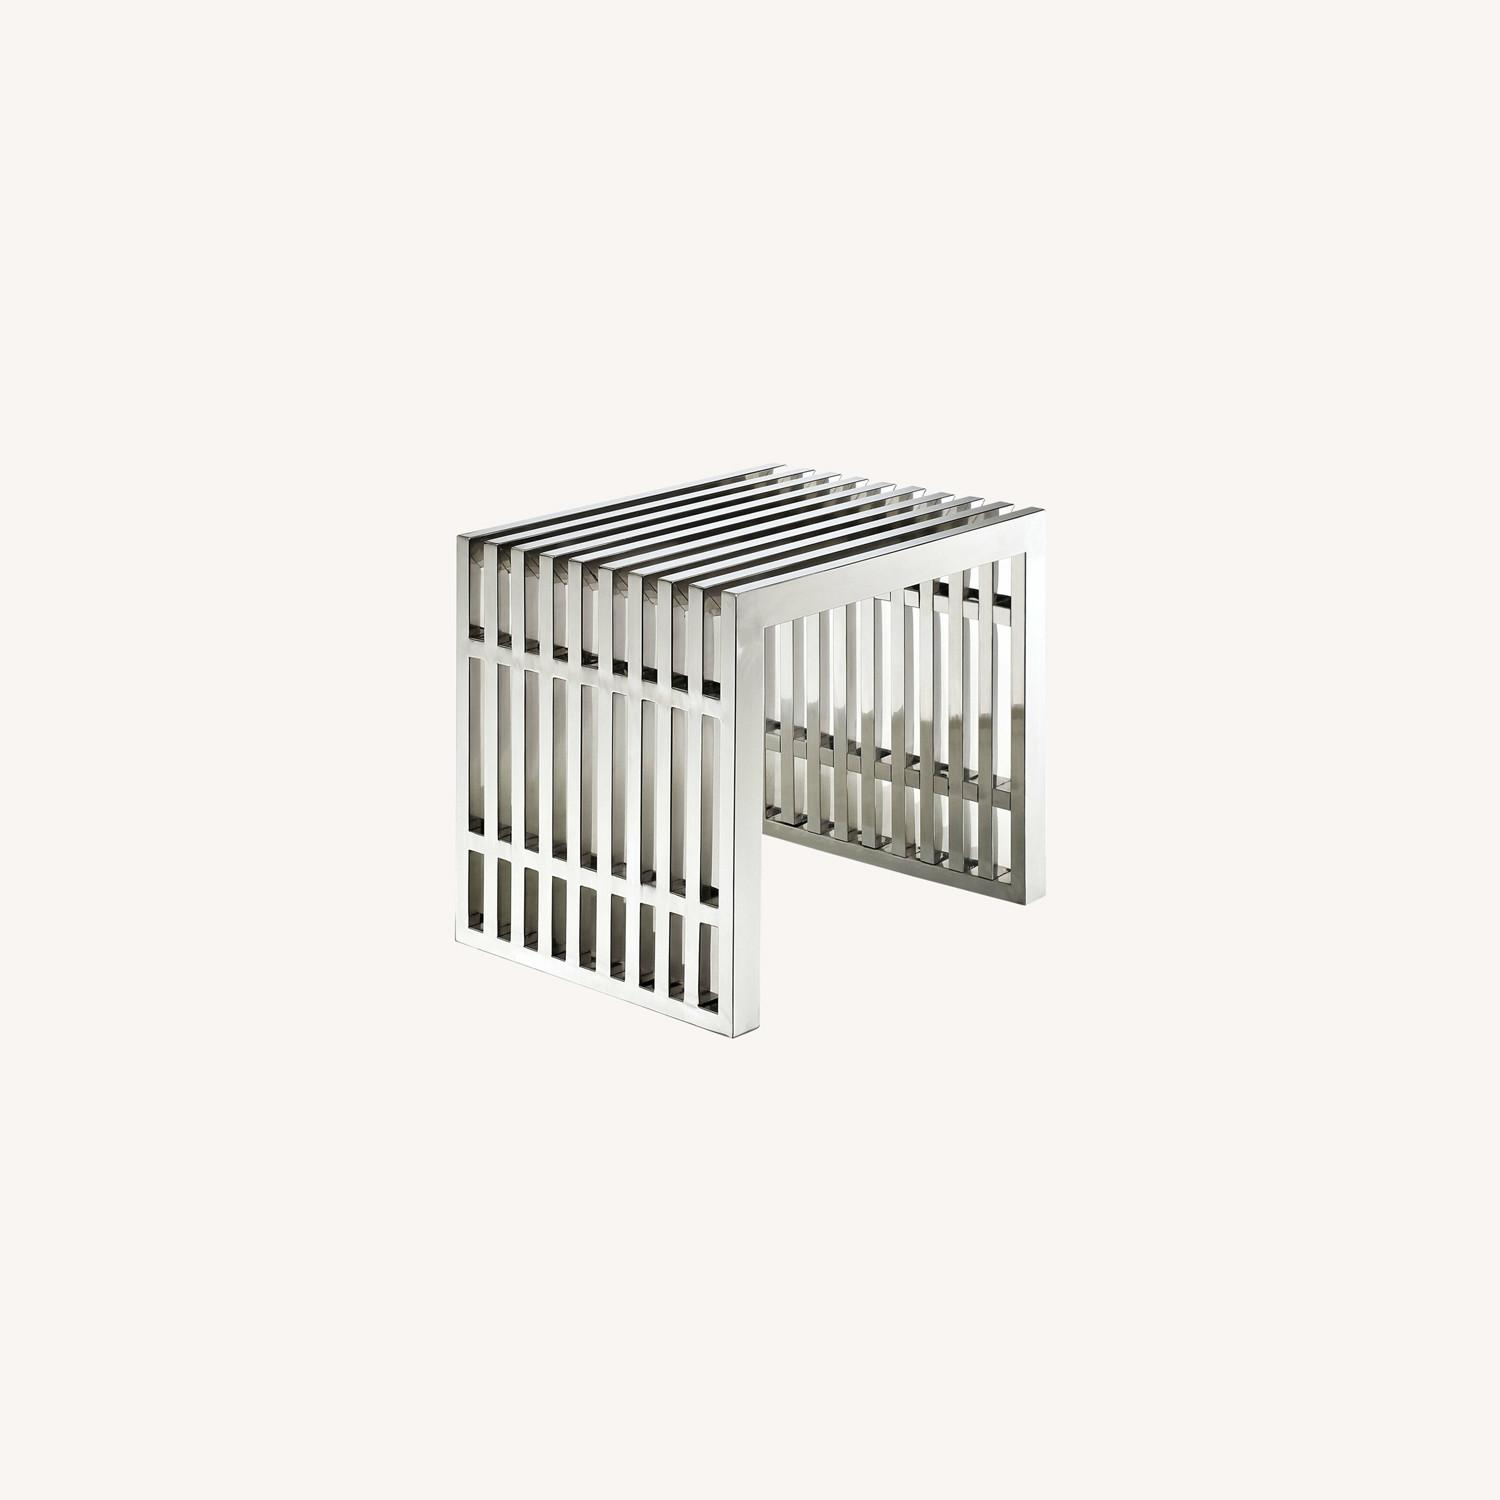 Bench In Stainless Silver Steel Finish - image-5